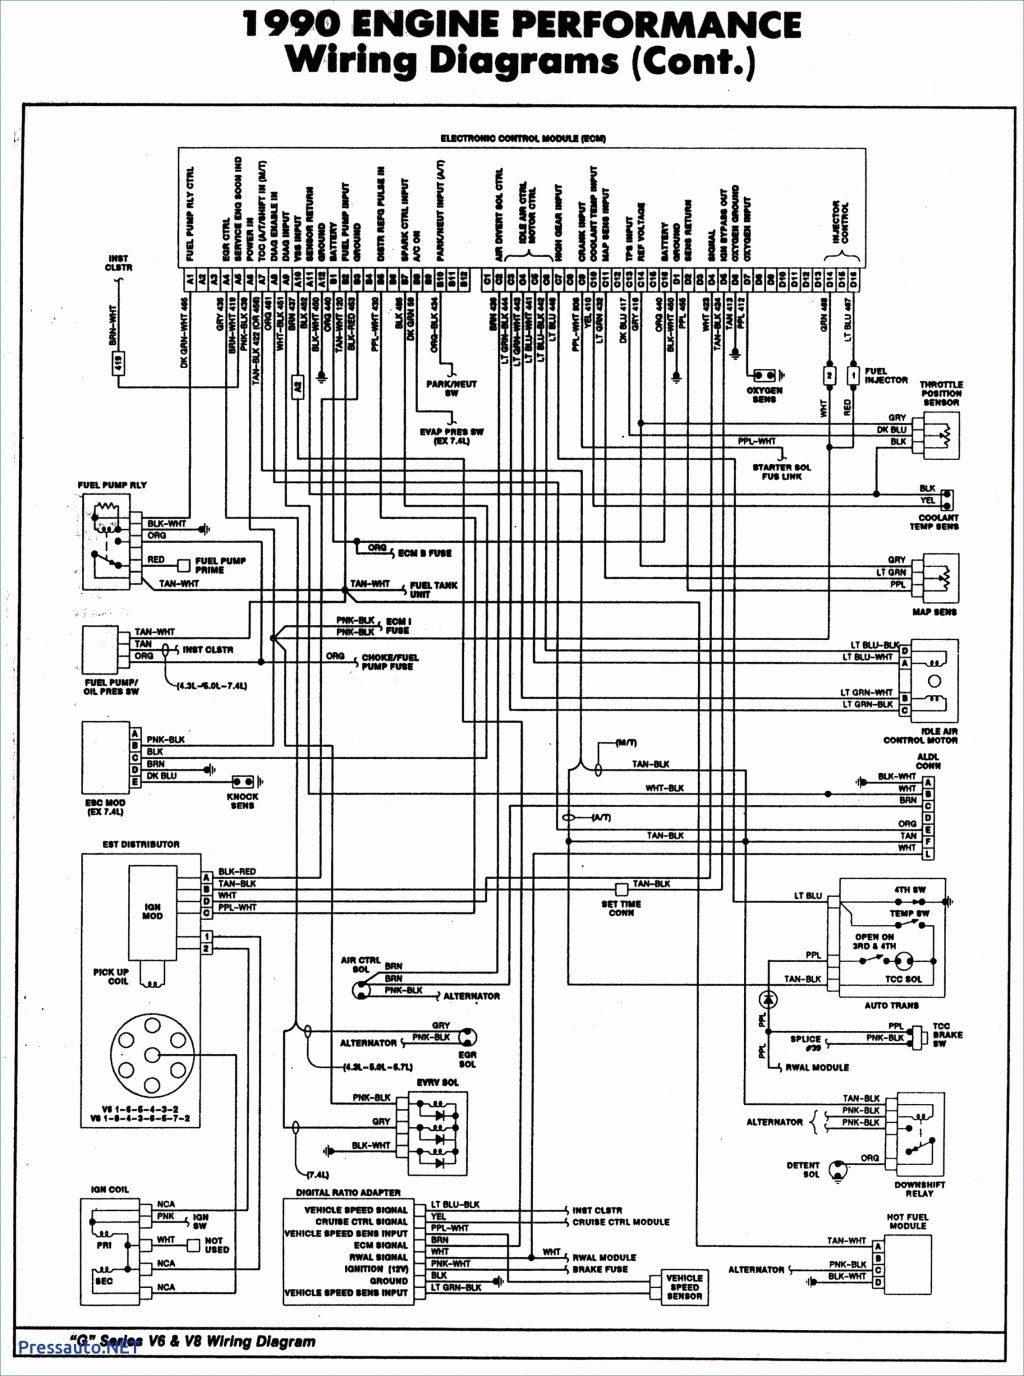 hds 8 wiring diagram bb 9308  volvo penta exploded view schematic engine harness and  exploded view schematic engine harness